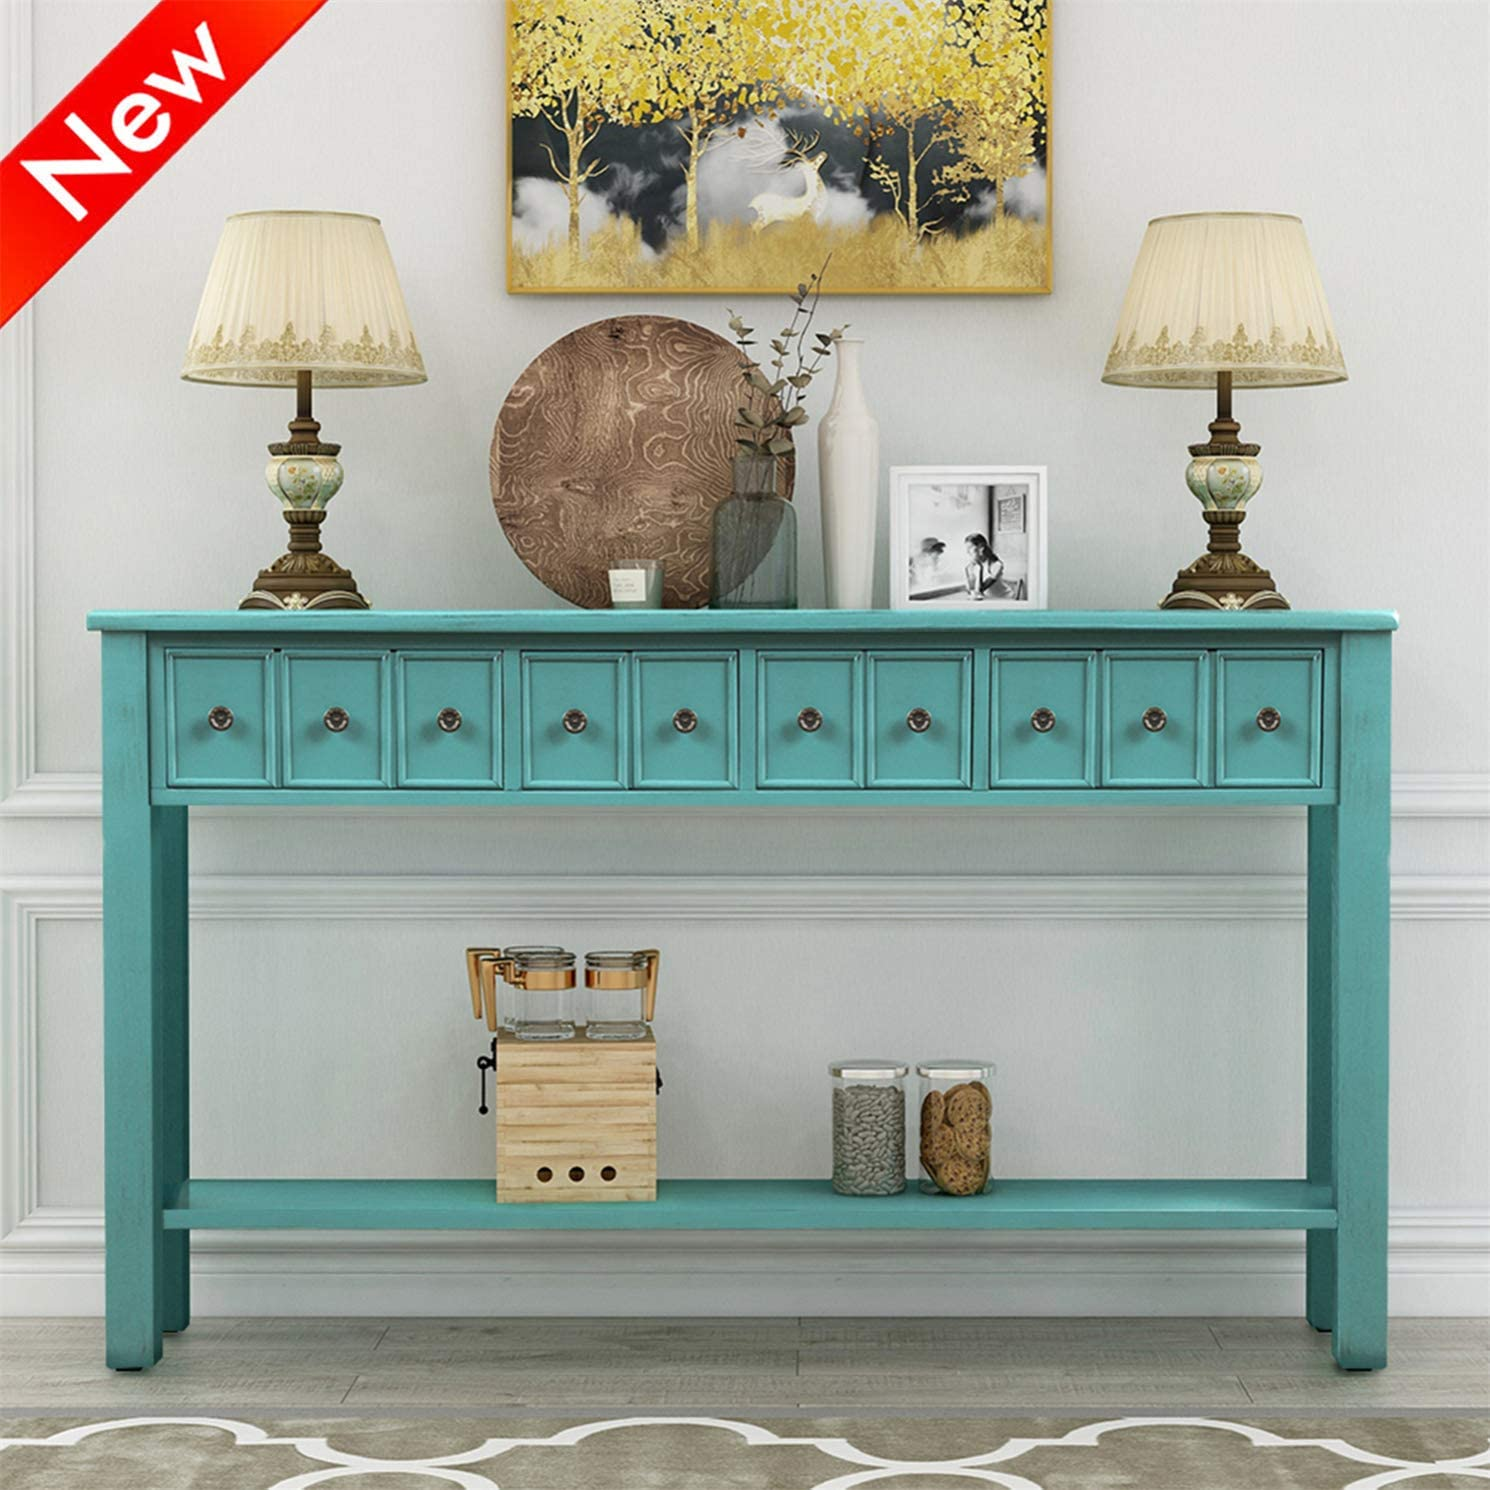 DOONHEXS Stronger Durable Console Table for Entryway, Thicken Solid Wood Sofa Tables with 2 Storage Drawers and 1 Shelf, Retro Style Entry Tables Sideboard Table for Living Room Hallway Blue-A